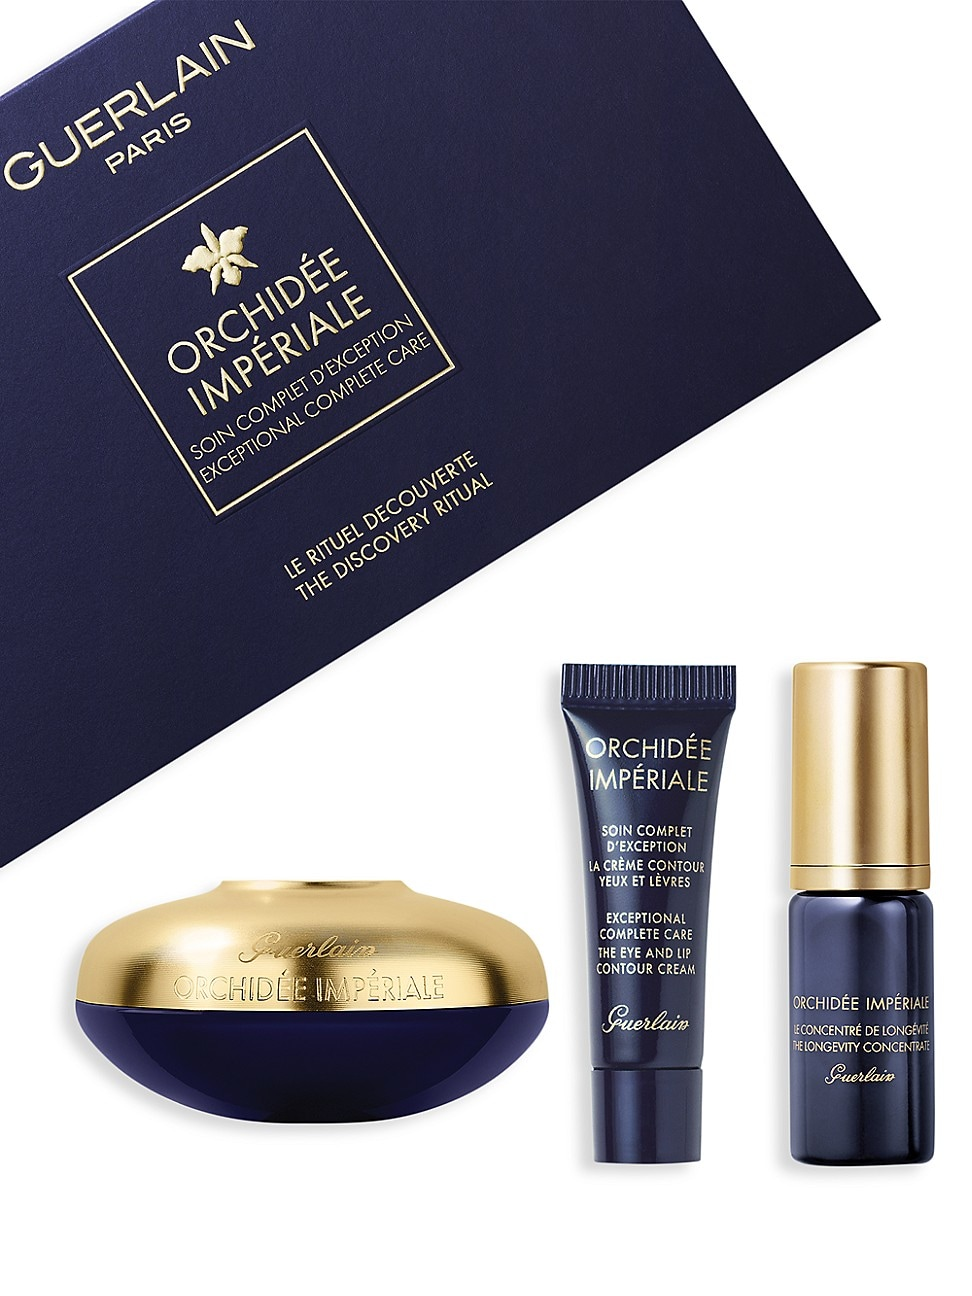 Guerlain Beauty sets ORCHIDEE IMPERIALE ANTI-AGING CREAM SKINCARE 3-PIECE VALUE SET